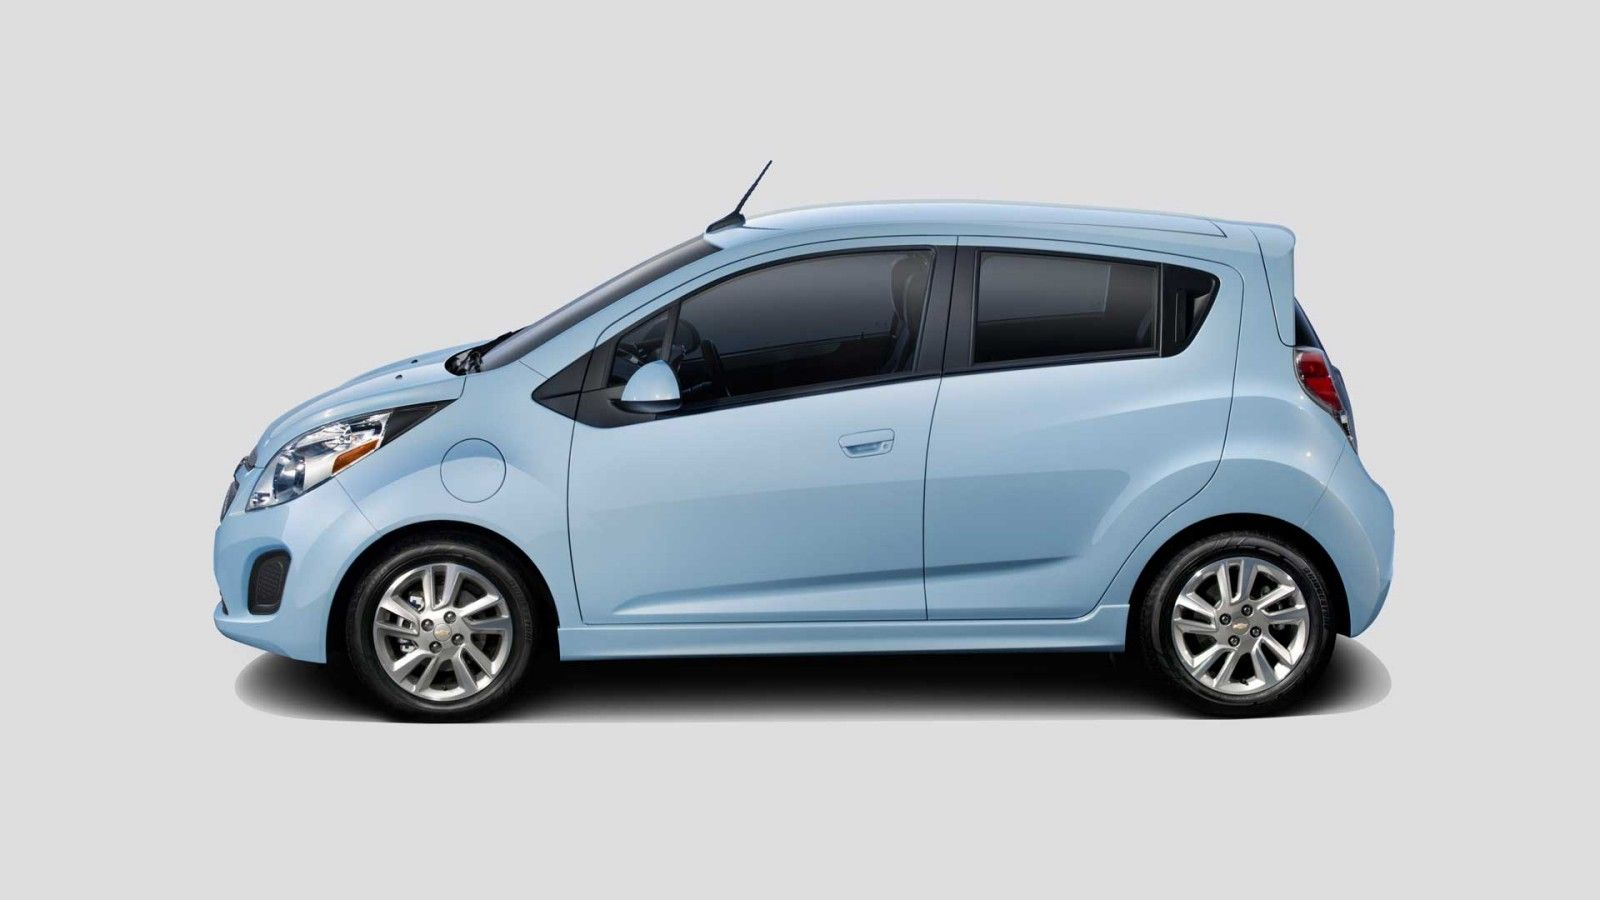 2014 chevy spark electric car range 82 miles price 26 685 00 type 100